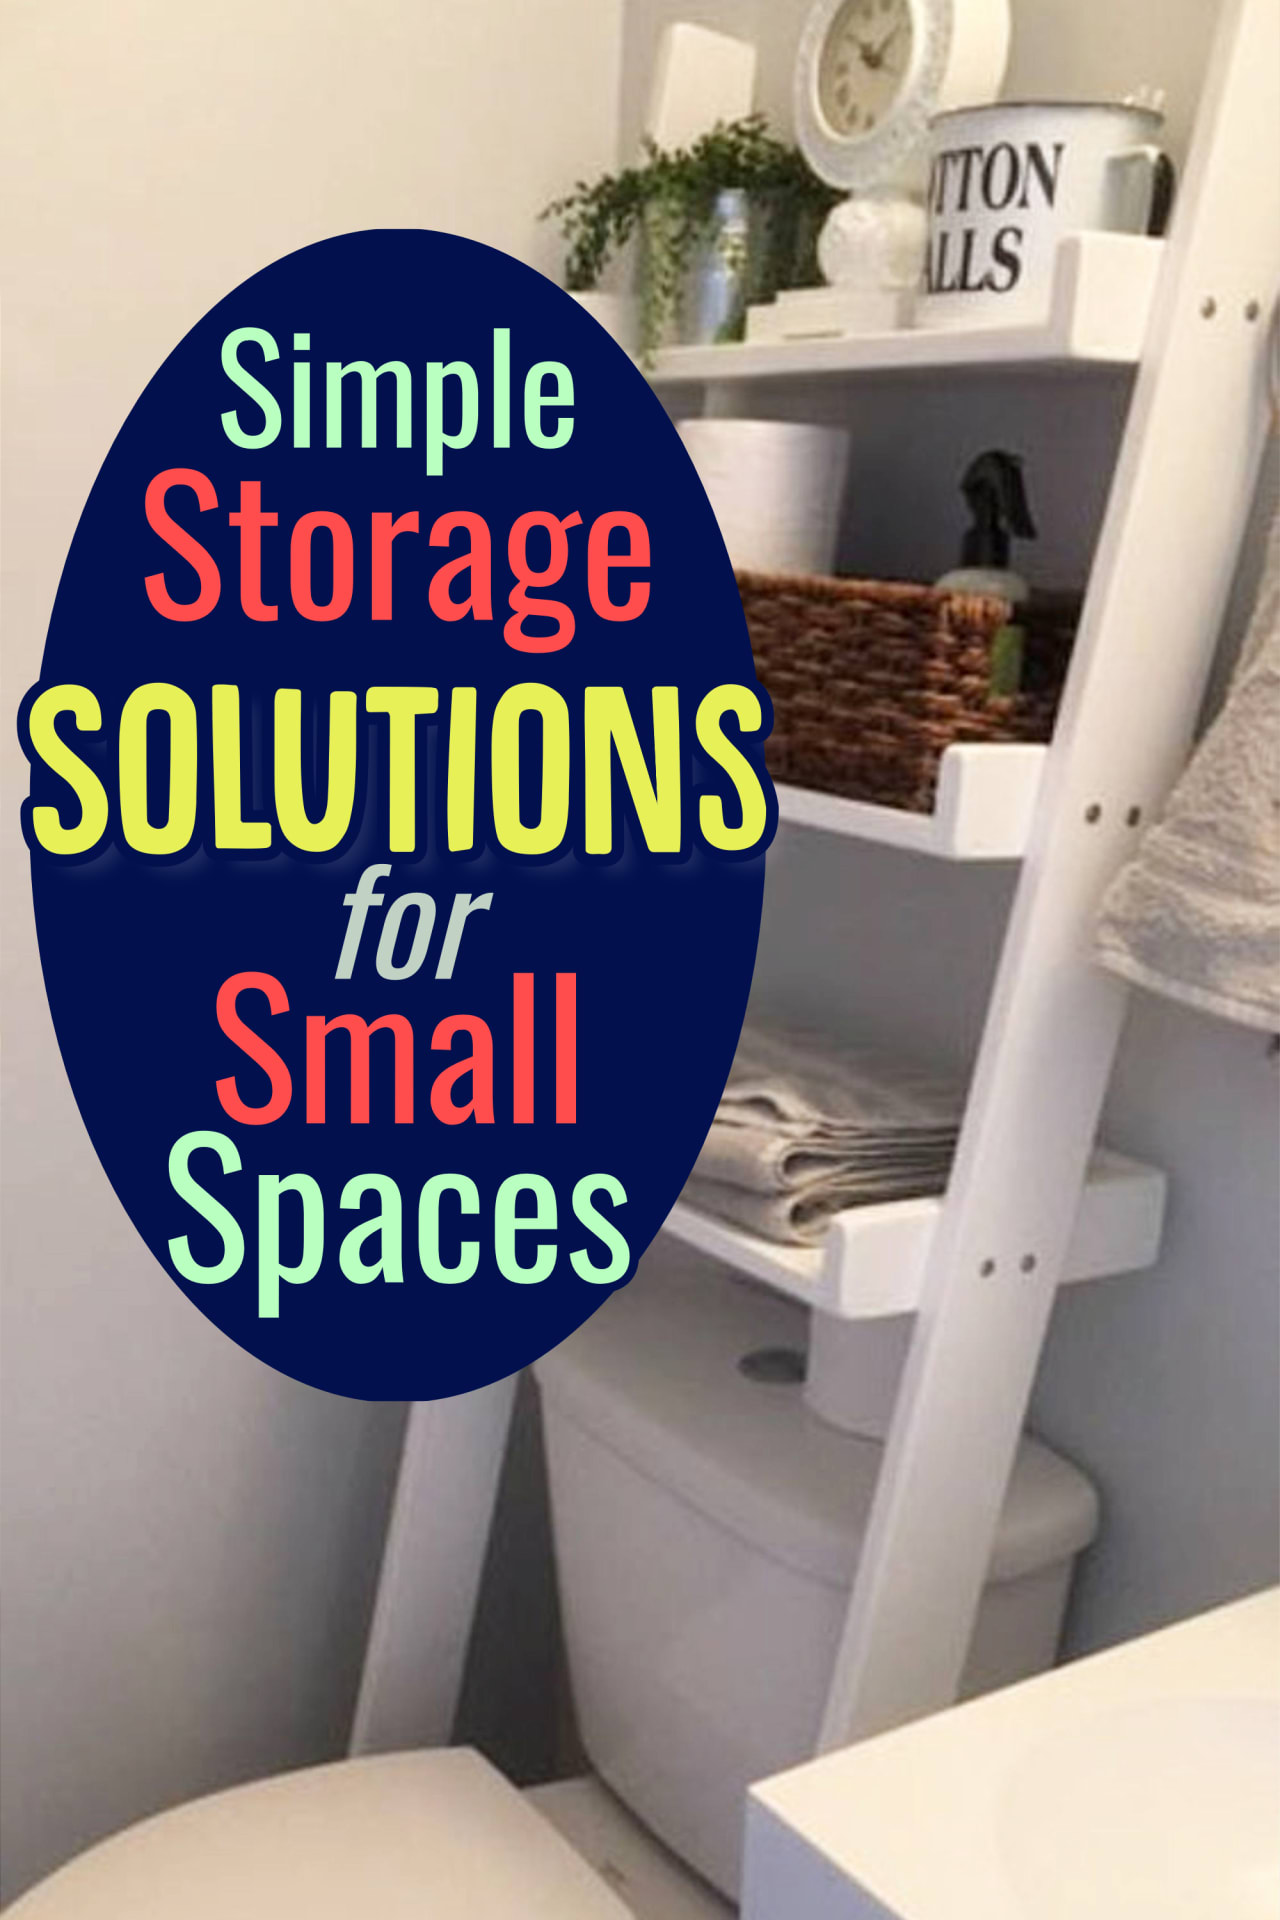 Storage and organization hacks for getting organized at home on a budget - Get organized at home with these creative storage solutions for small spaces in your bedroom, tiny apartment, little flat, small kitchen, living room, bathroom and more for making the most of small spaces for serious clutter control.  Go from cluttered mess to organized success when uncluttering your home!